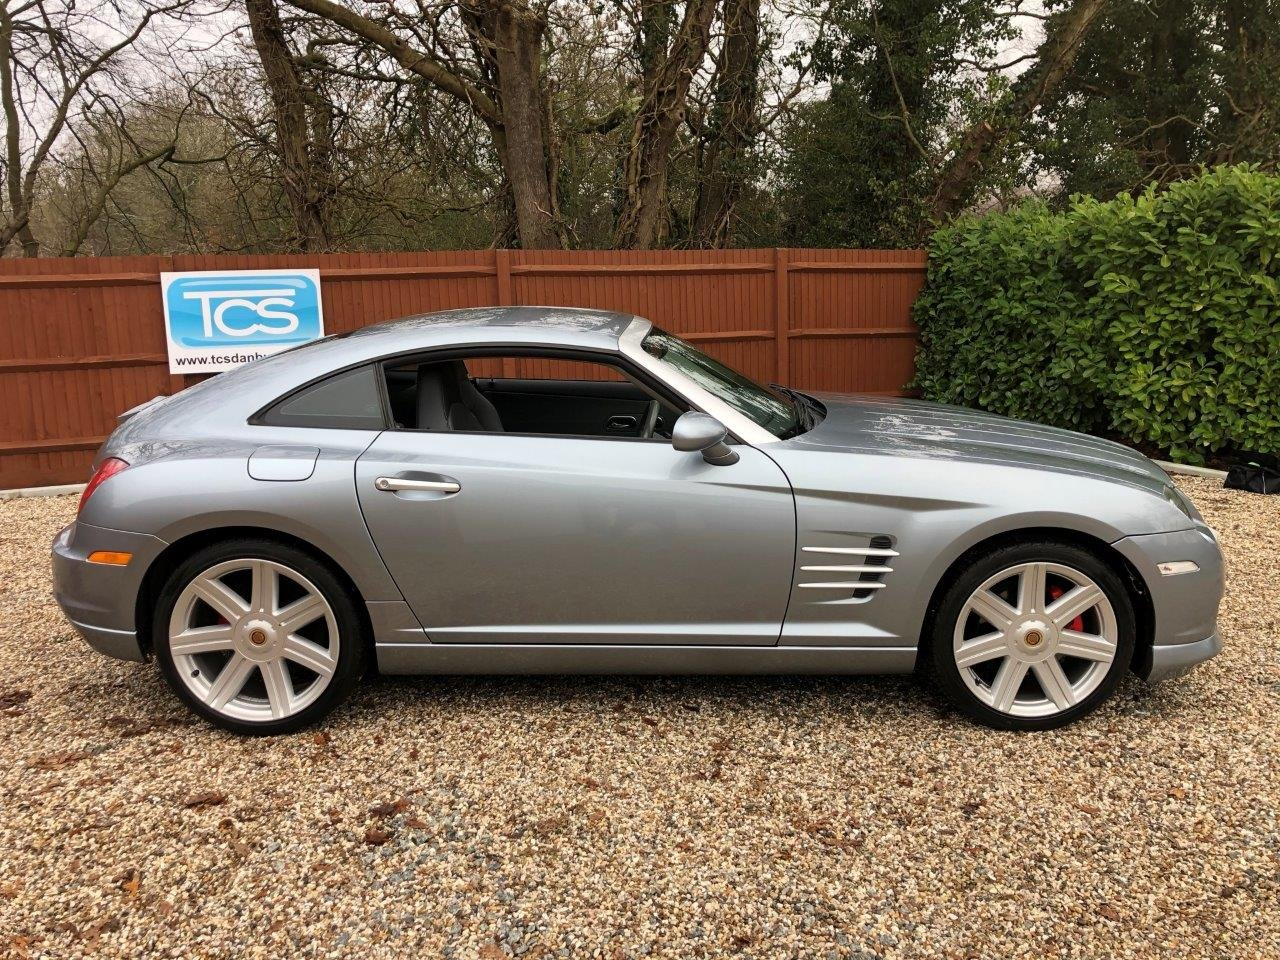 2003 Chrysler Crossfire 3.2i V6 Coupe 5-Speed Automatic SOLD (picture 3 of 12)